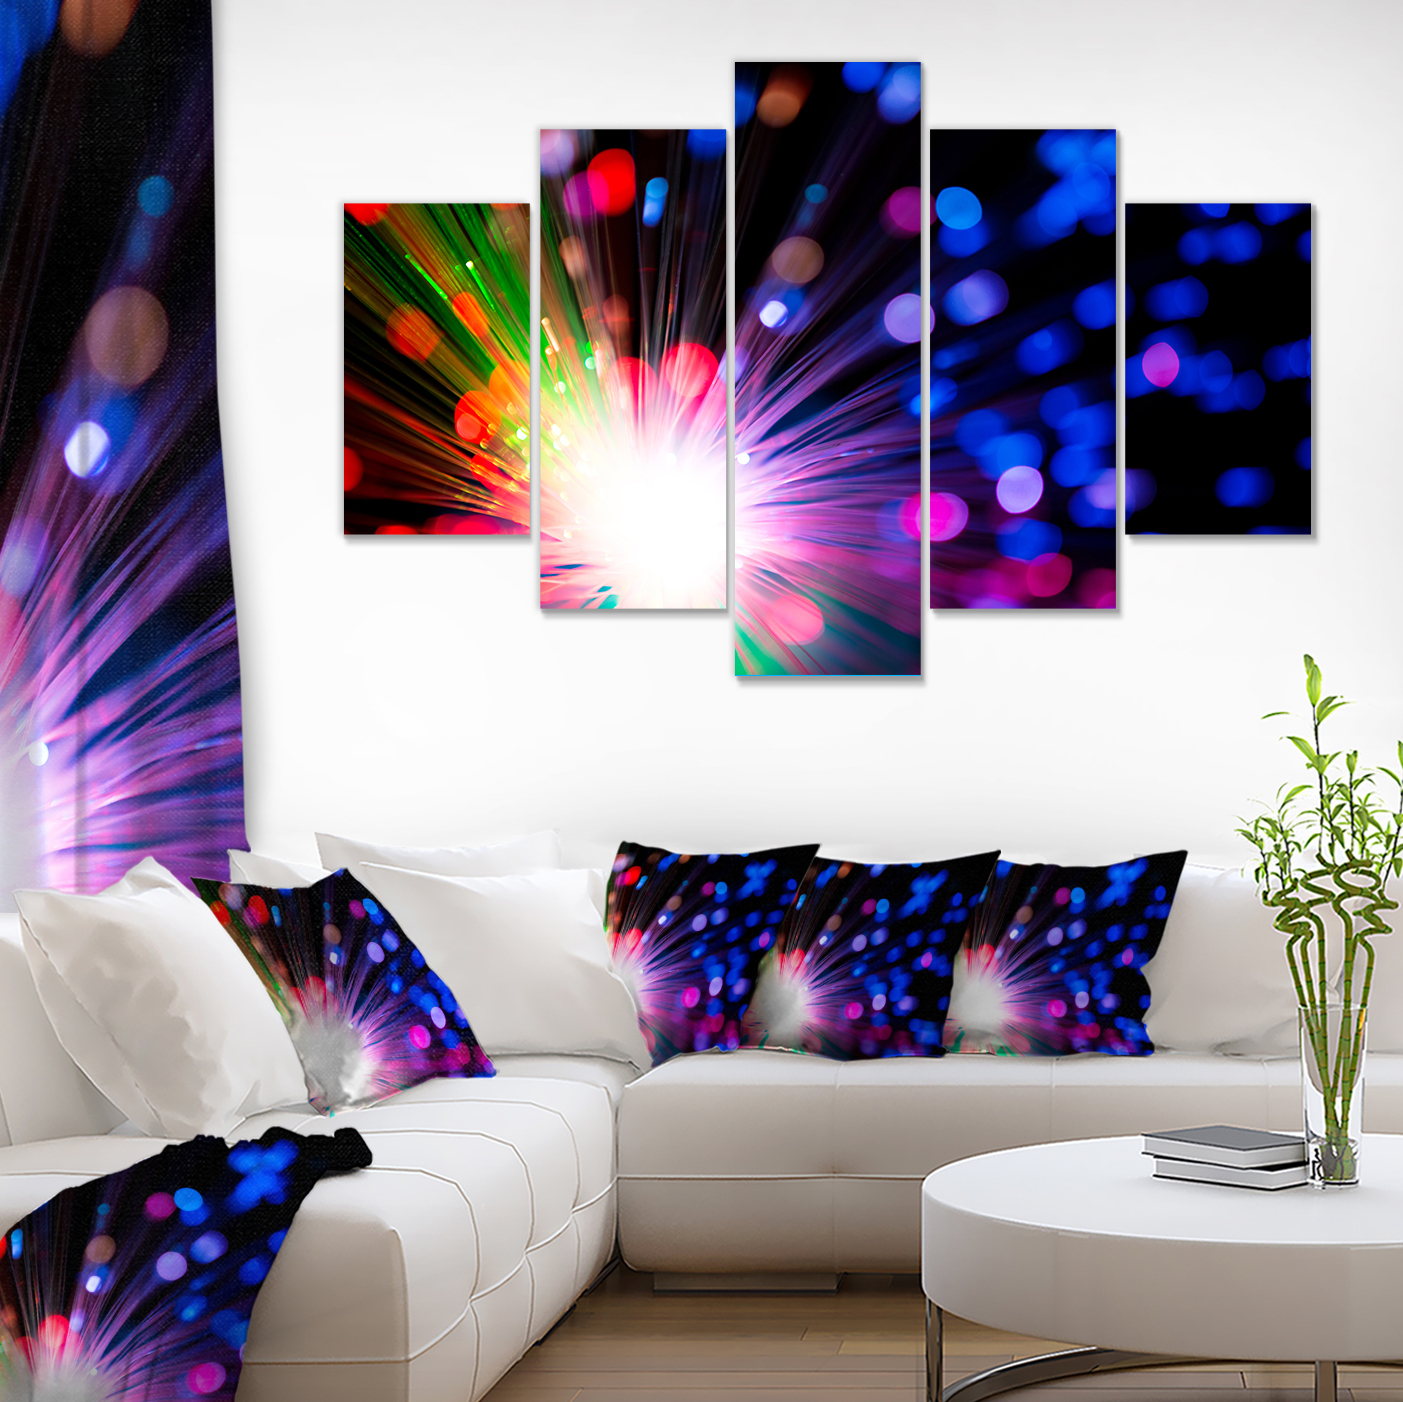 ABSTRACT PURPLE BLUE MODERN CANVAS PRINT ART PICTURE 30 X 20 Inch WALL ART